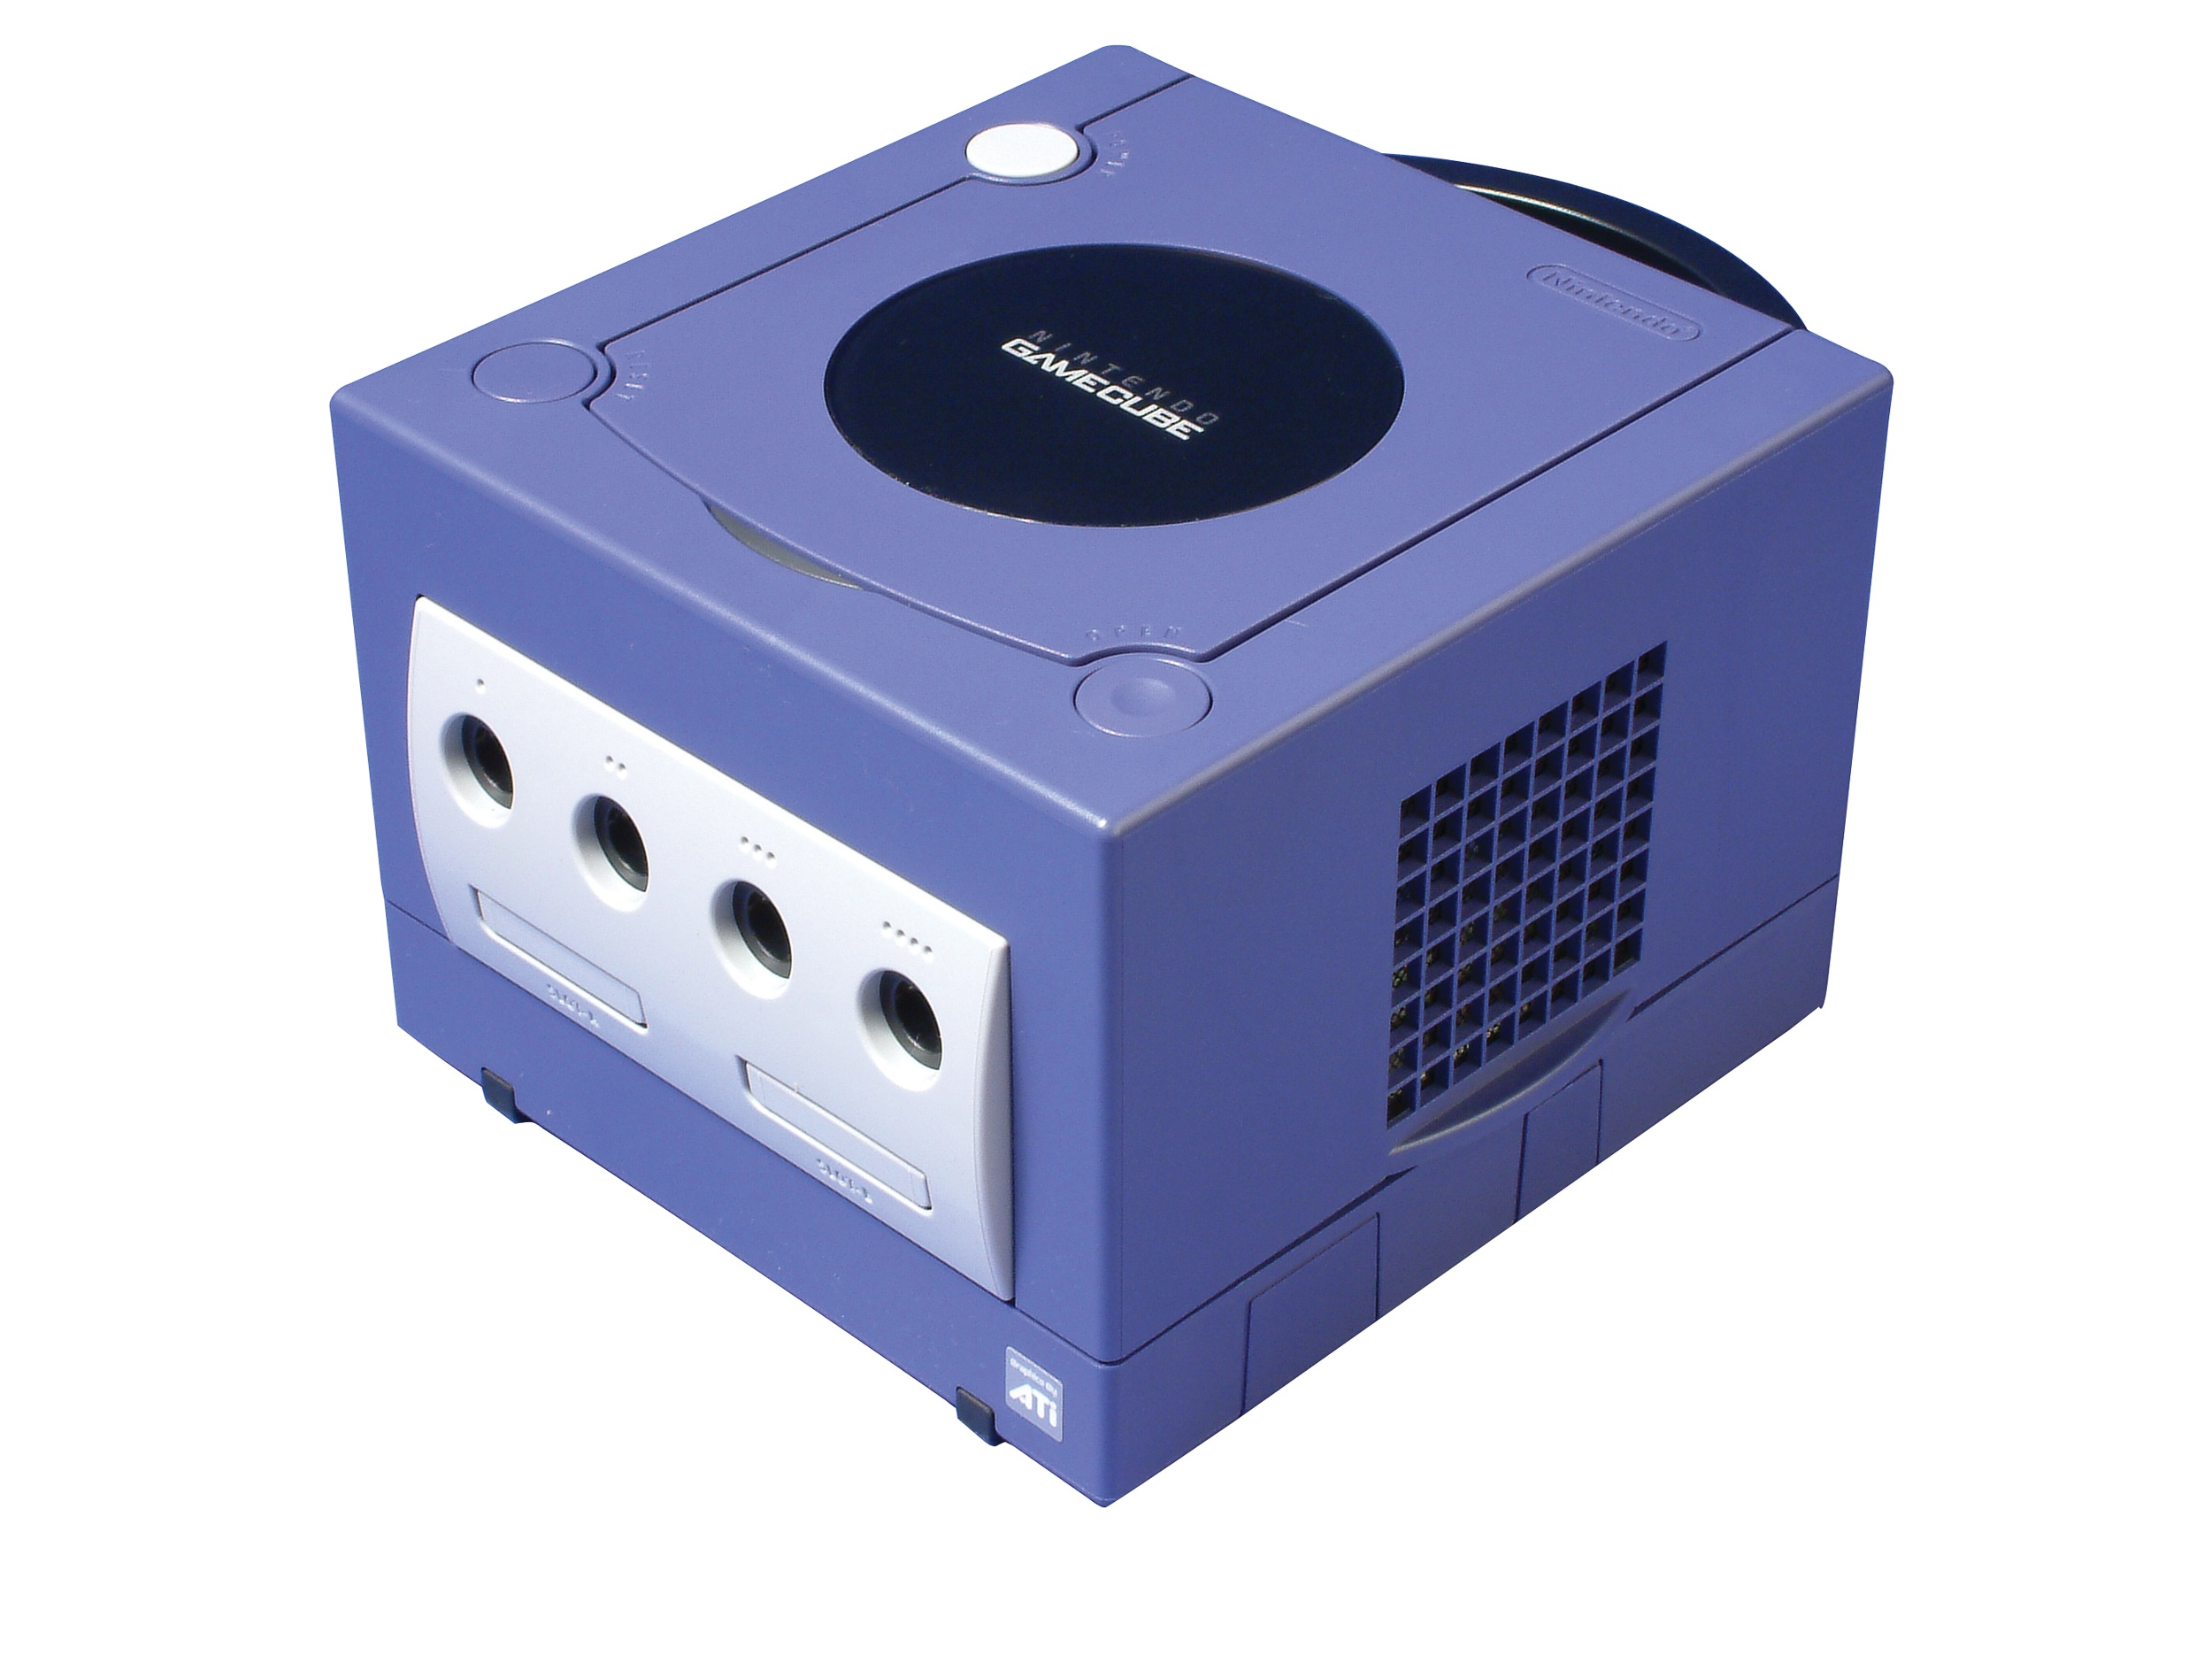 Nintendo GameCube (Computerspielemuseum Berlin CC BY-SA)